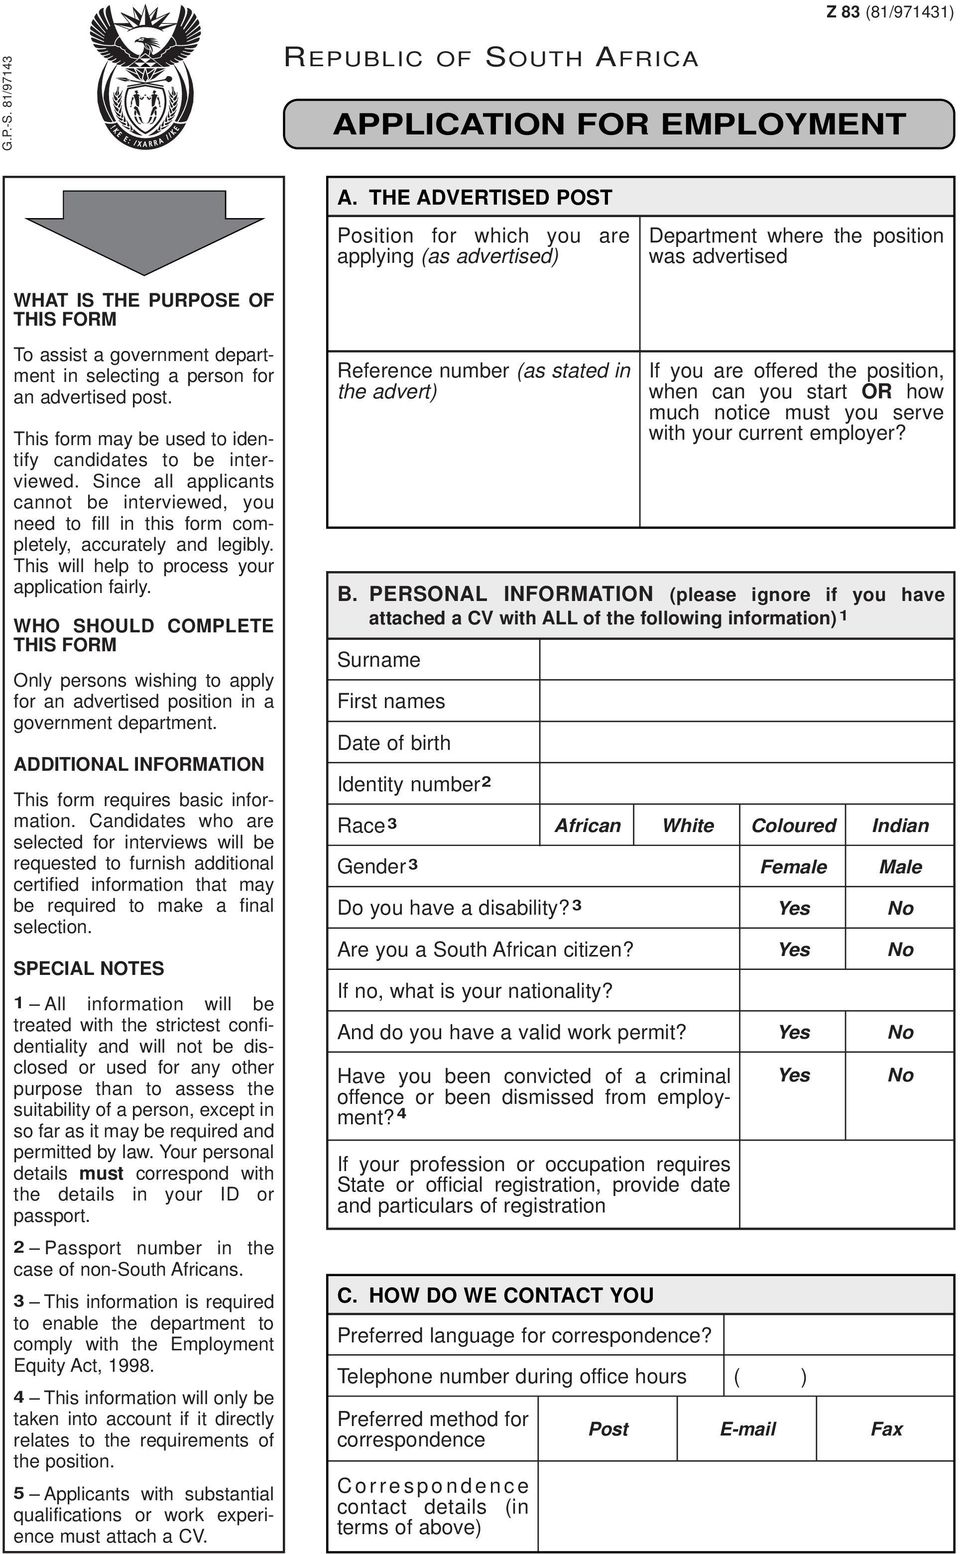 This will help to process your application fairly. WHO SHOULD COMPLETE THIS FORM Only persons wishing to apply for an advertised position in a government department.